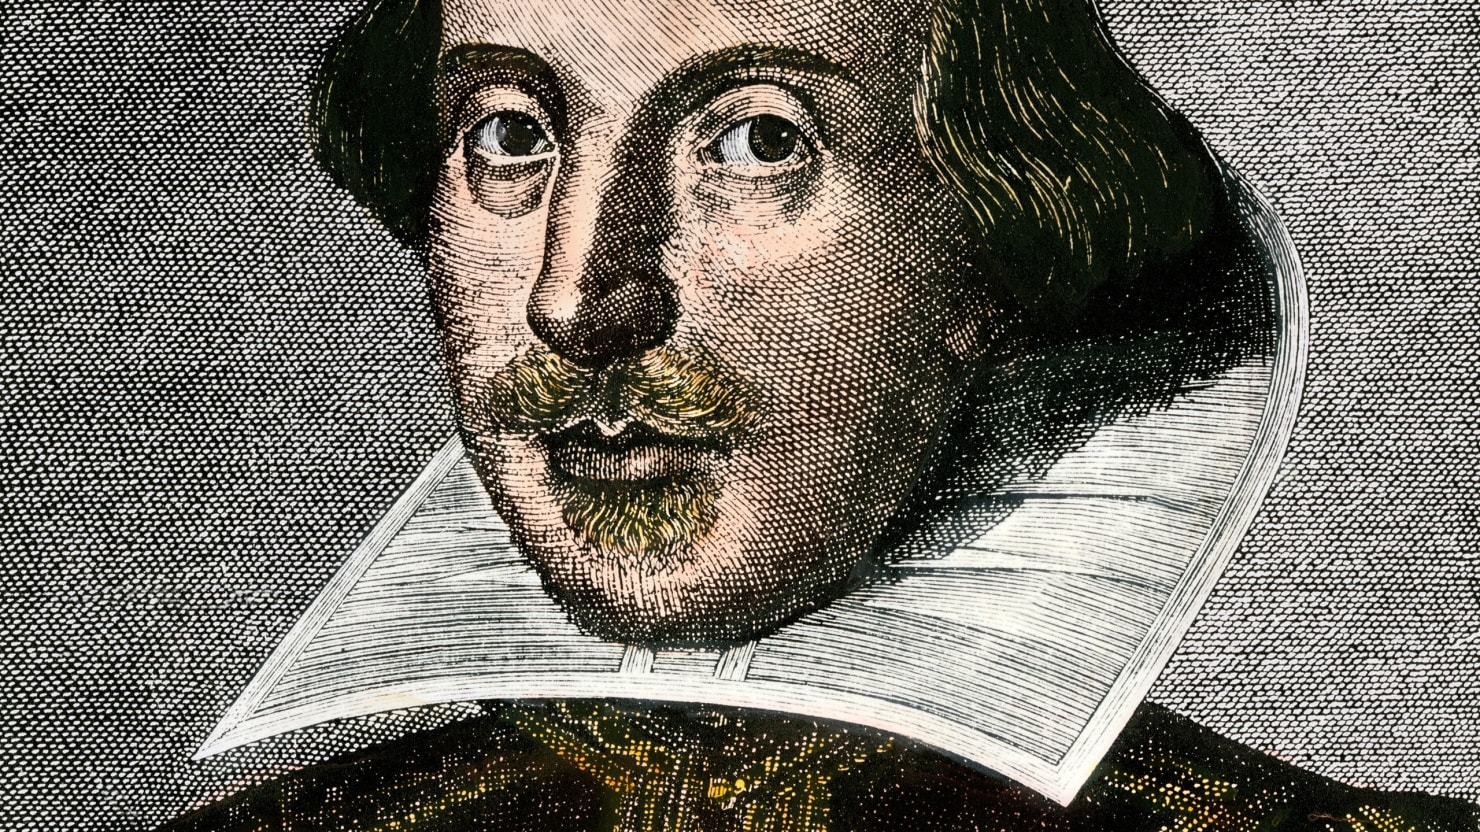 Computer Finds Lost Shakespeare Play